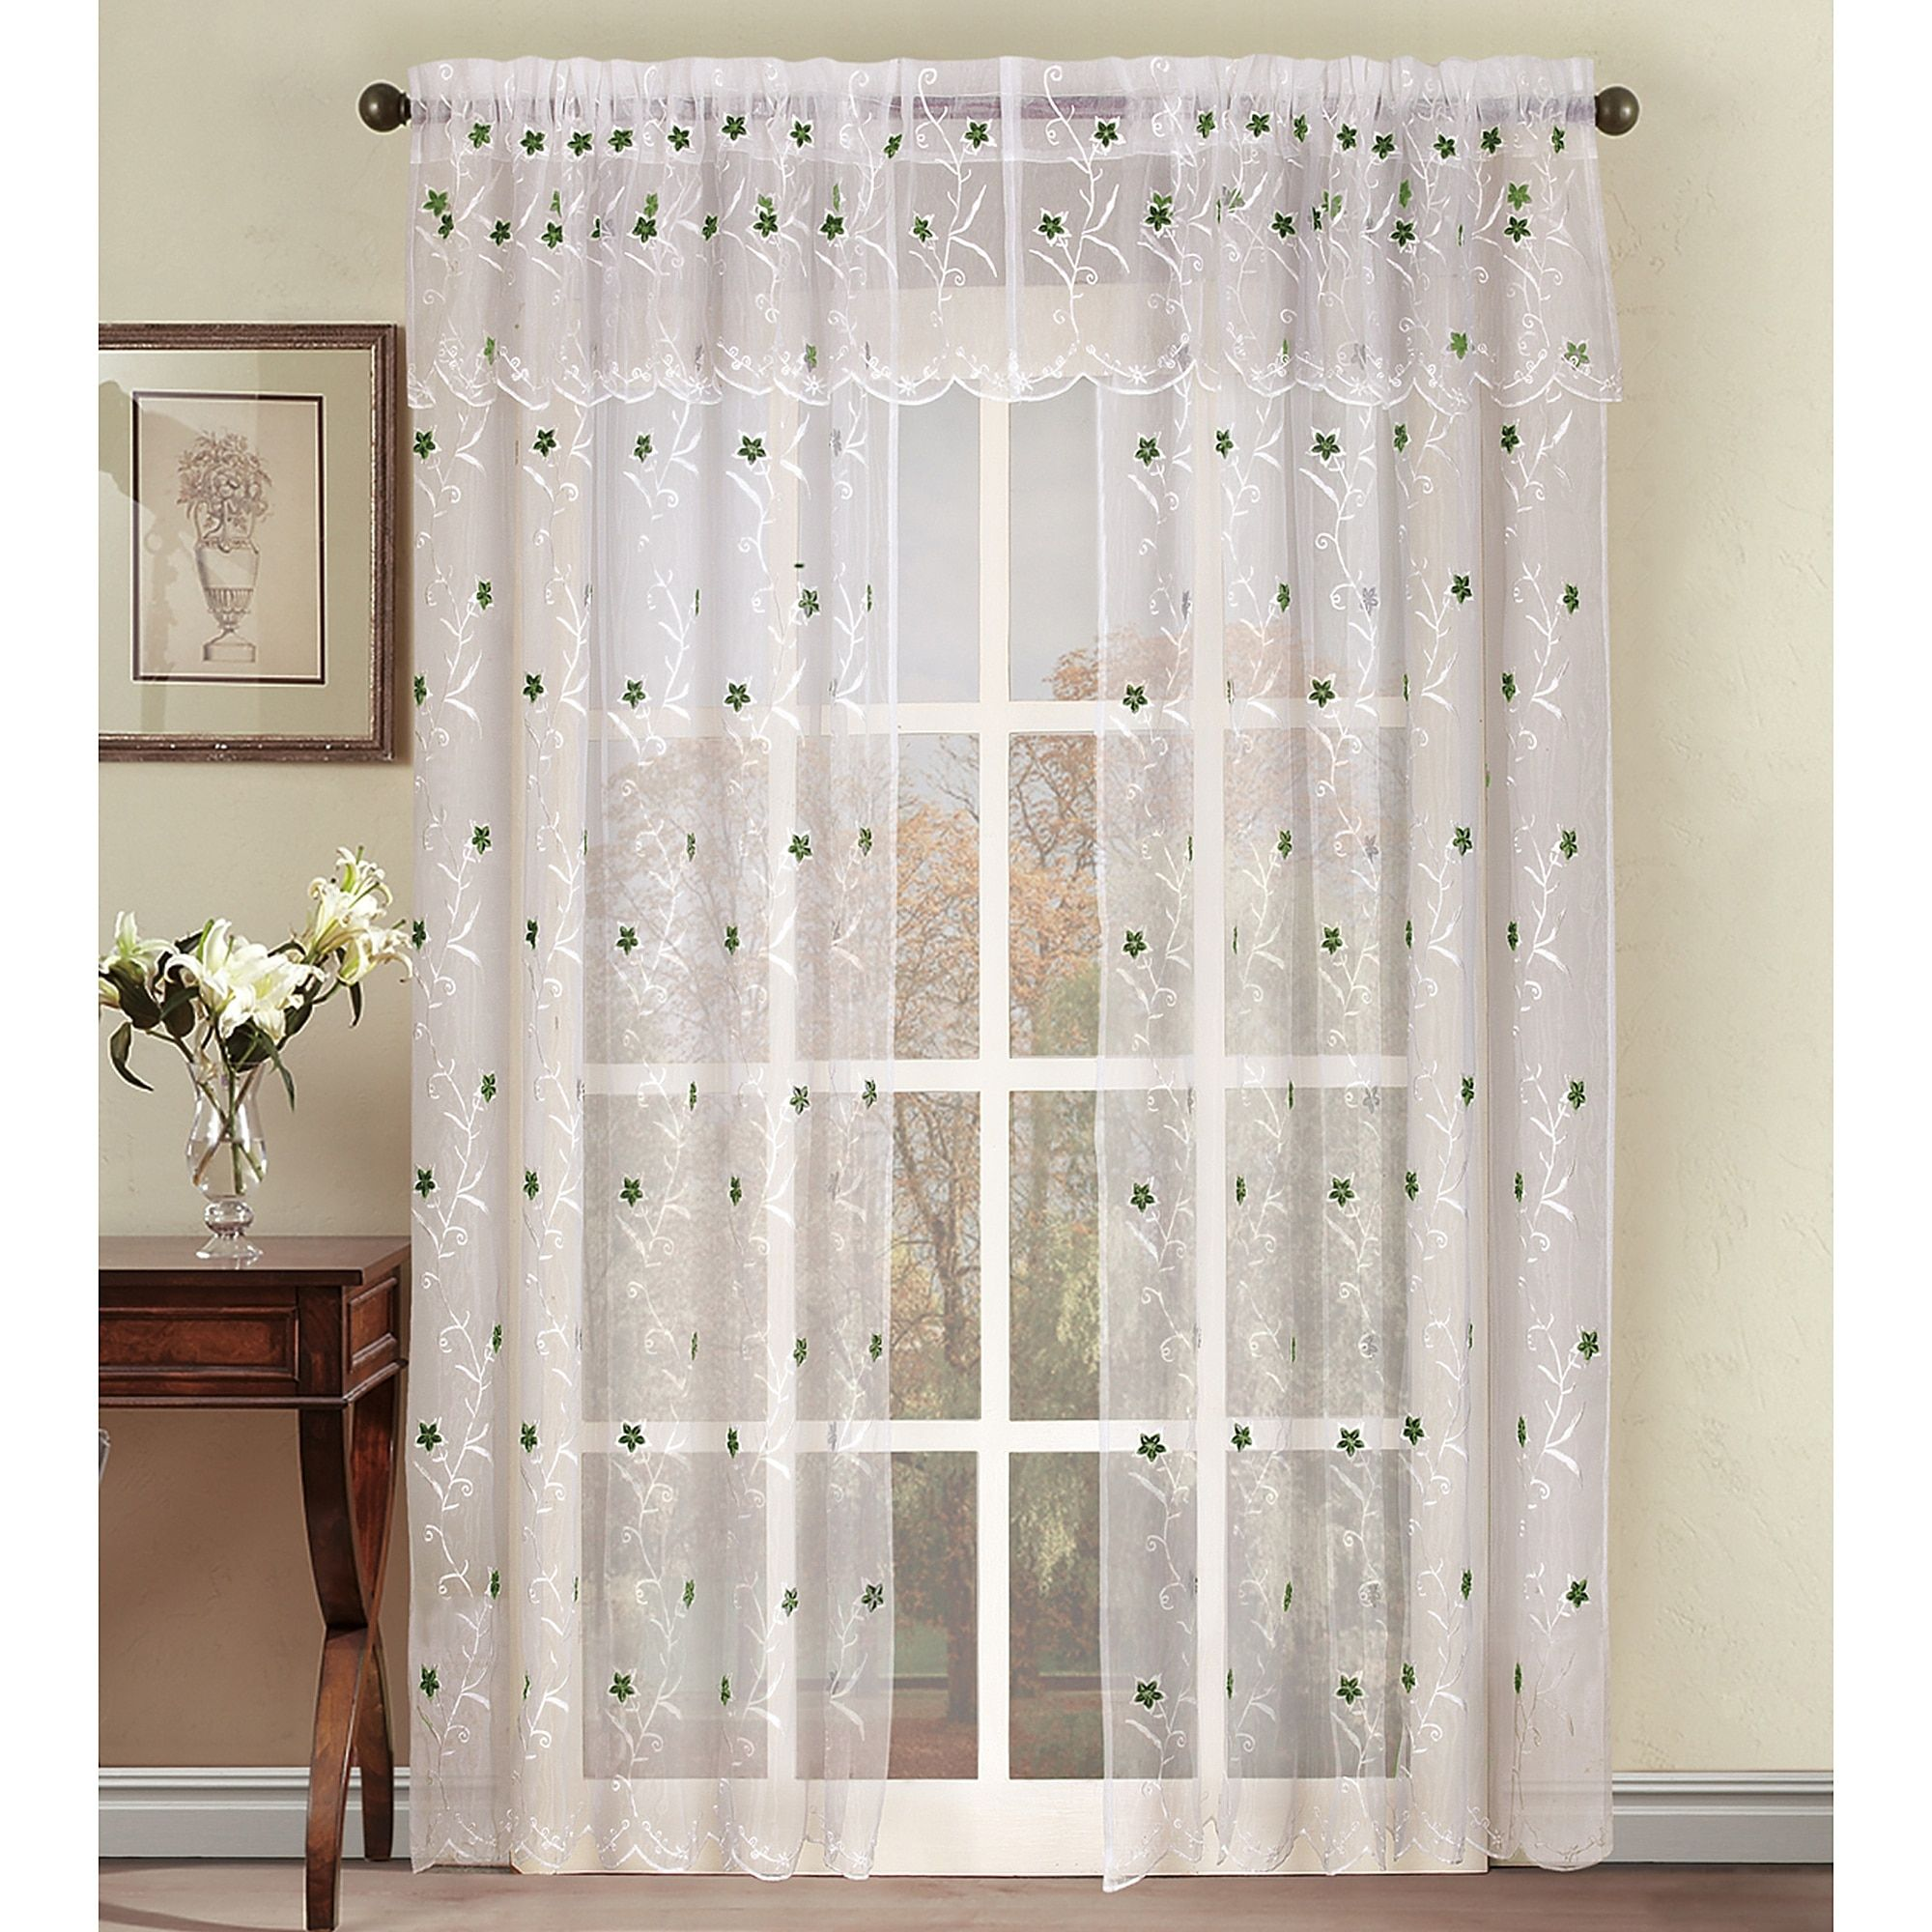 Astor Sheer Embroidered Rod Pocket Window Curtain Panel Panel Curtains Drapes And Blinds Curtains